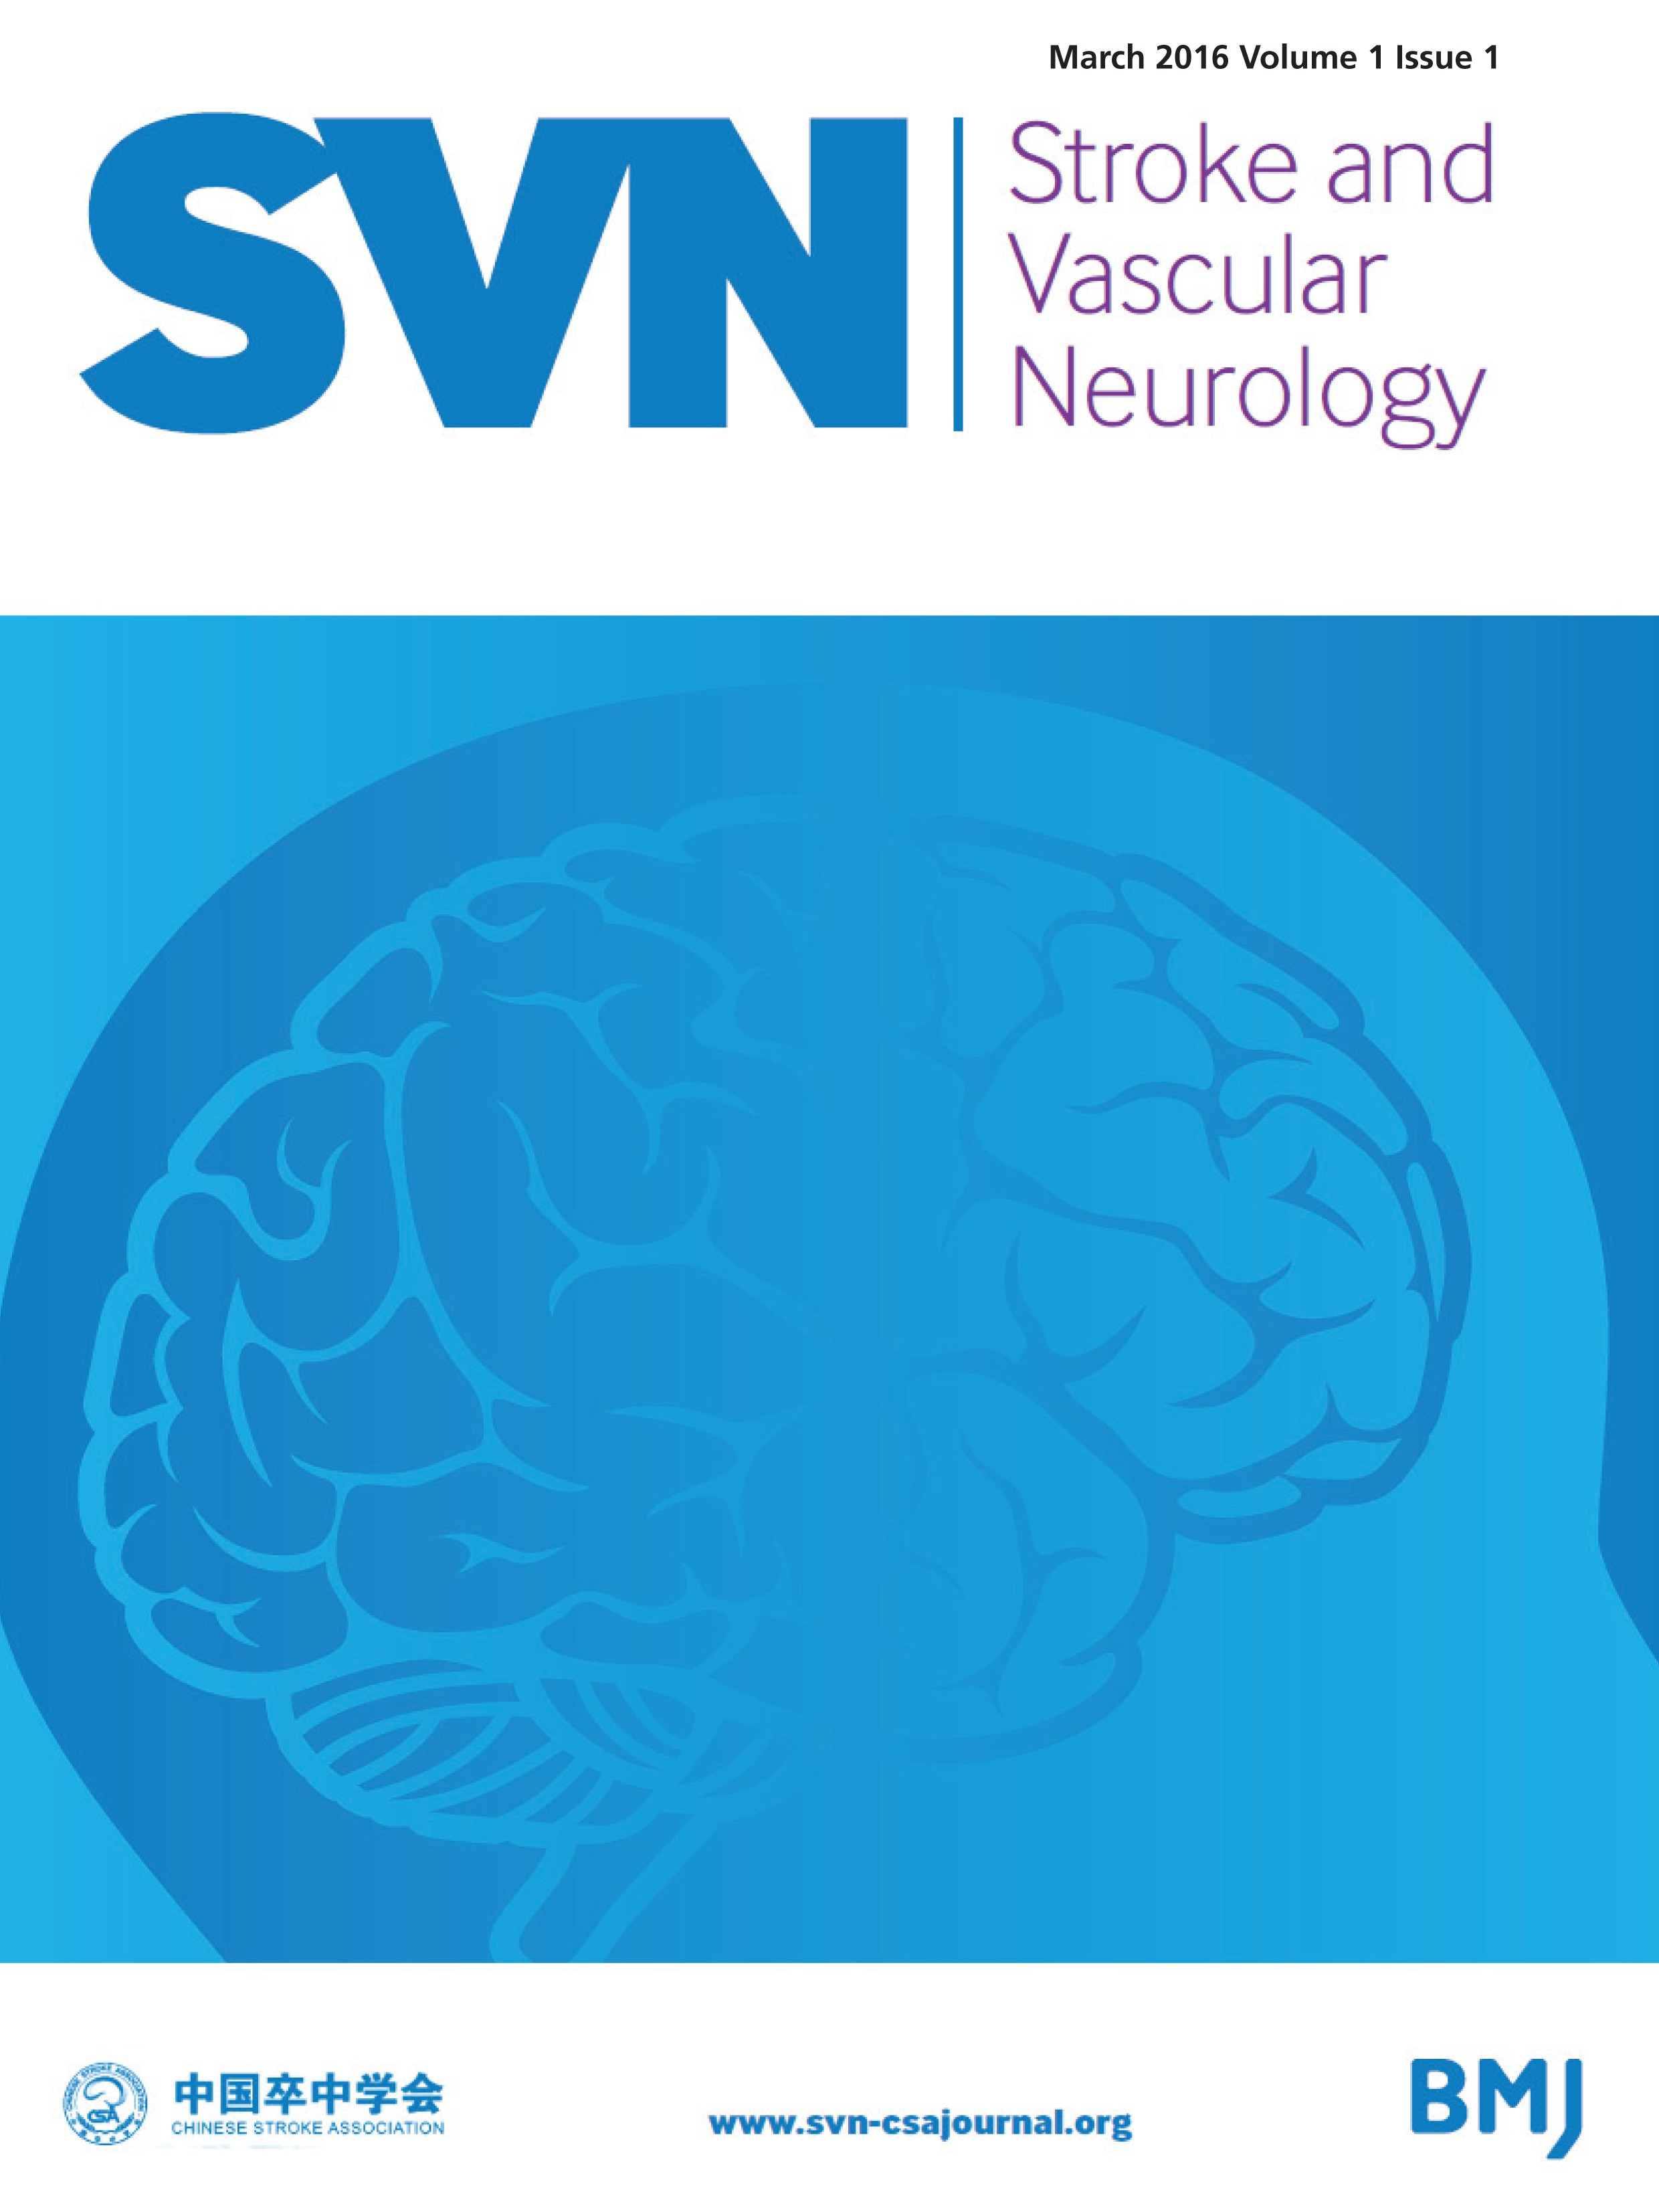 Endovascular thrombectomy for stroke: current best practice